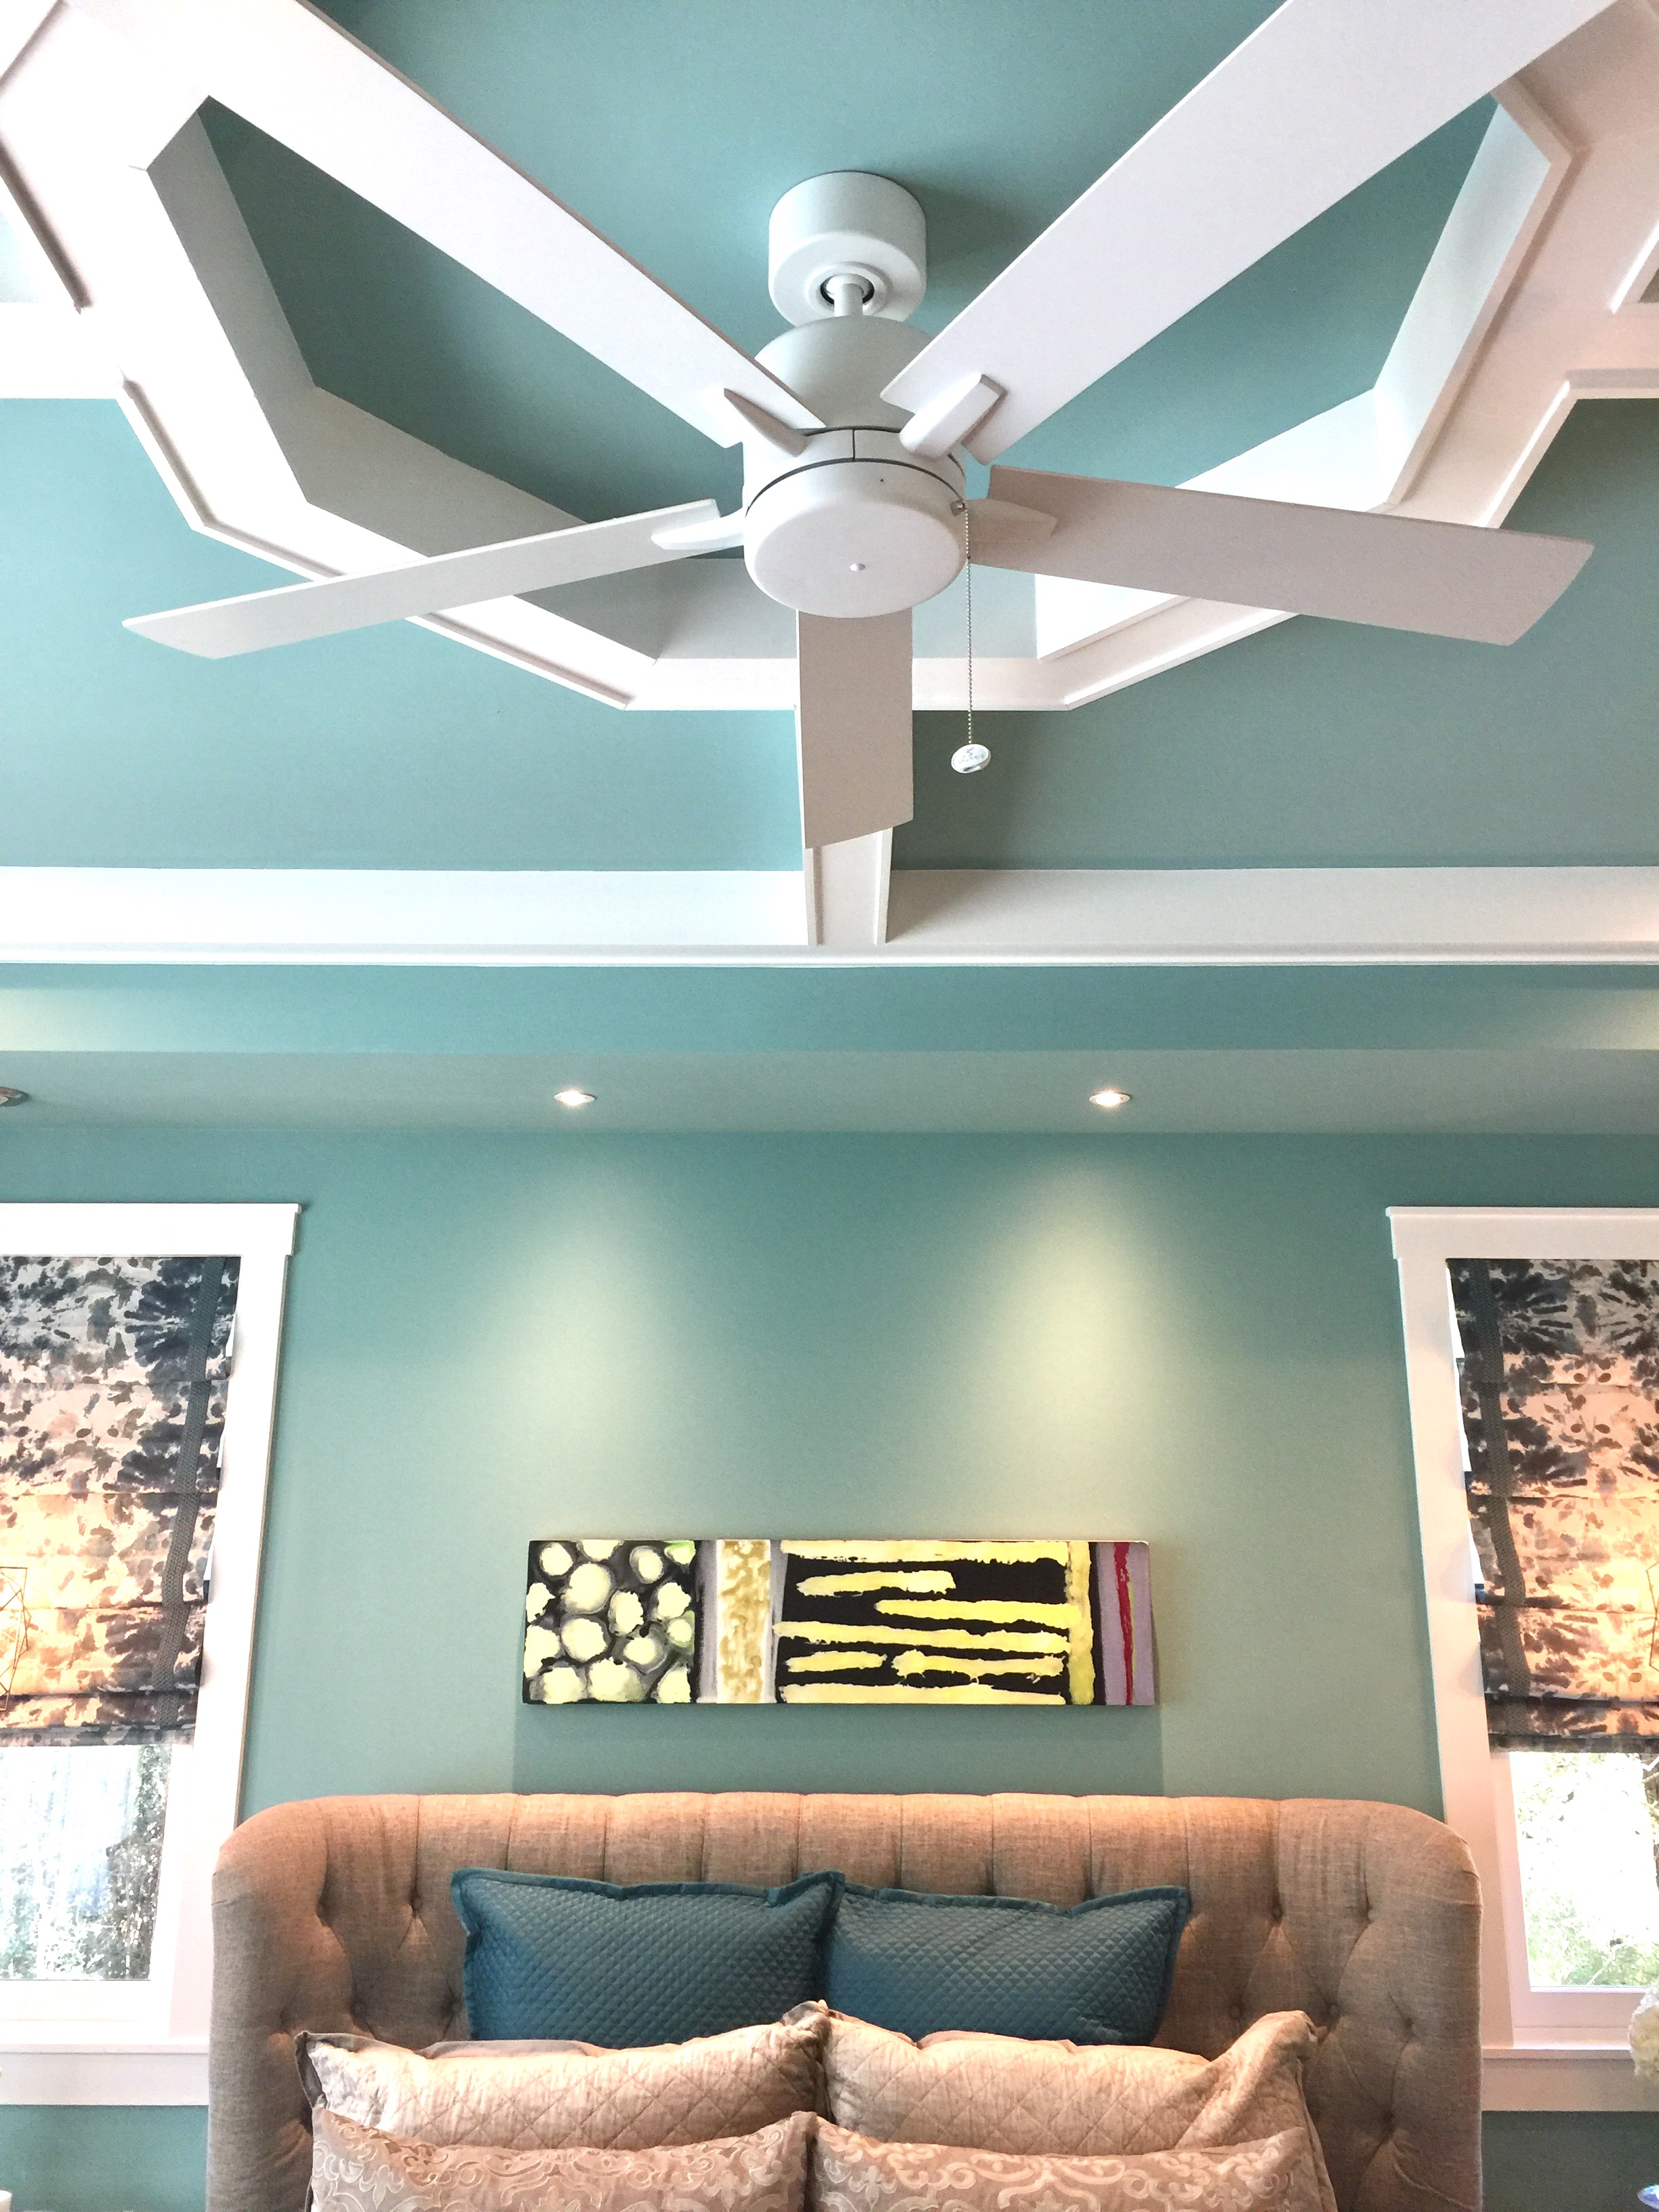 Southern Living Showcase Home - Master Bedroom in Tiffany Blue with coffered ceiling and ceiling fan, Designed by Chairma Design Group #tiffanyblue